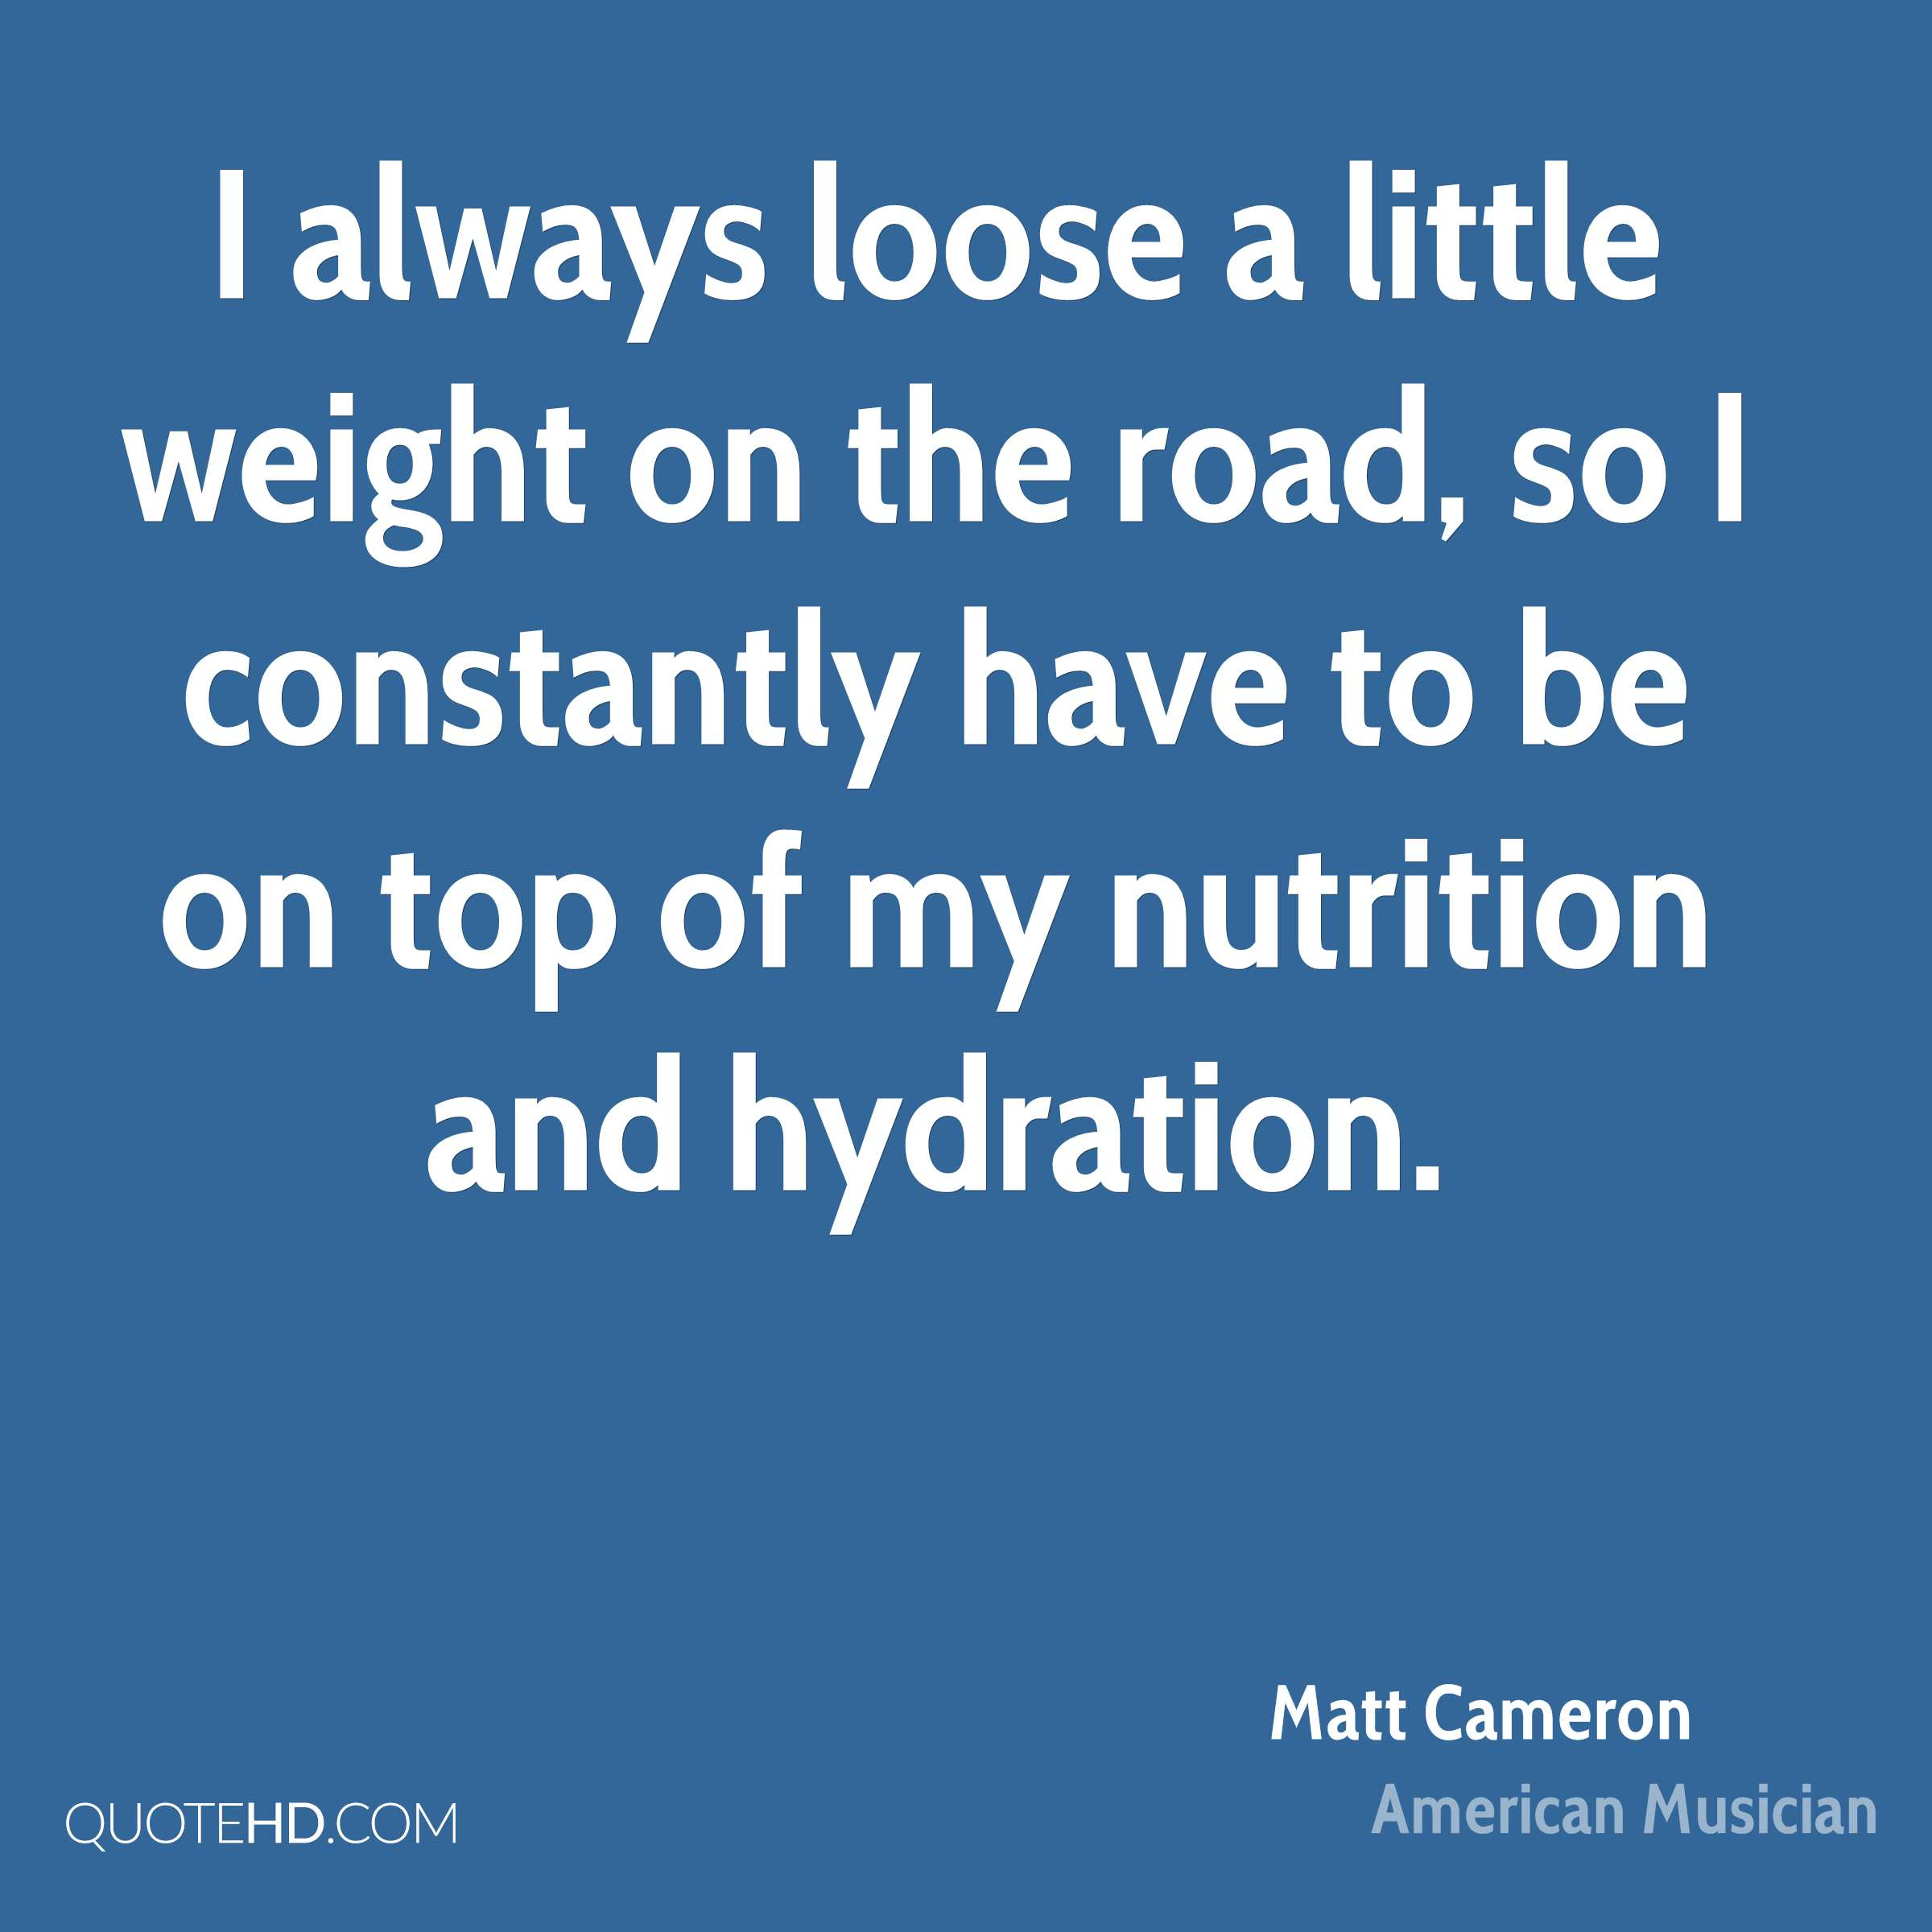 I always loose a little weight on the road, so I constantly have to be on top of my nutrition and hydration.